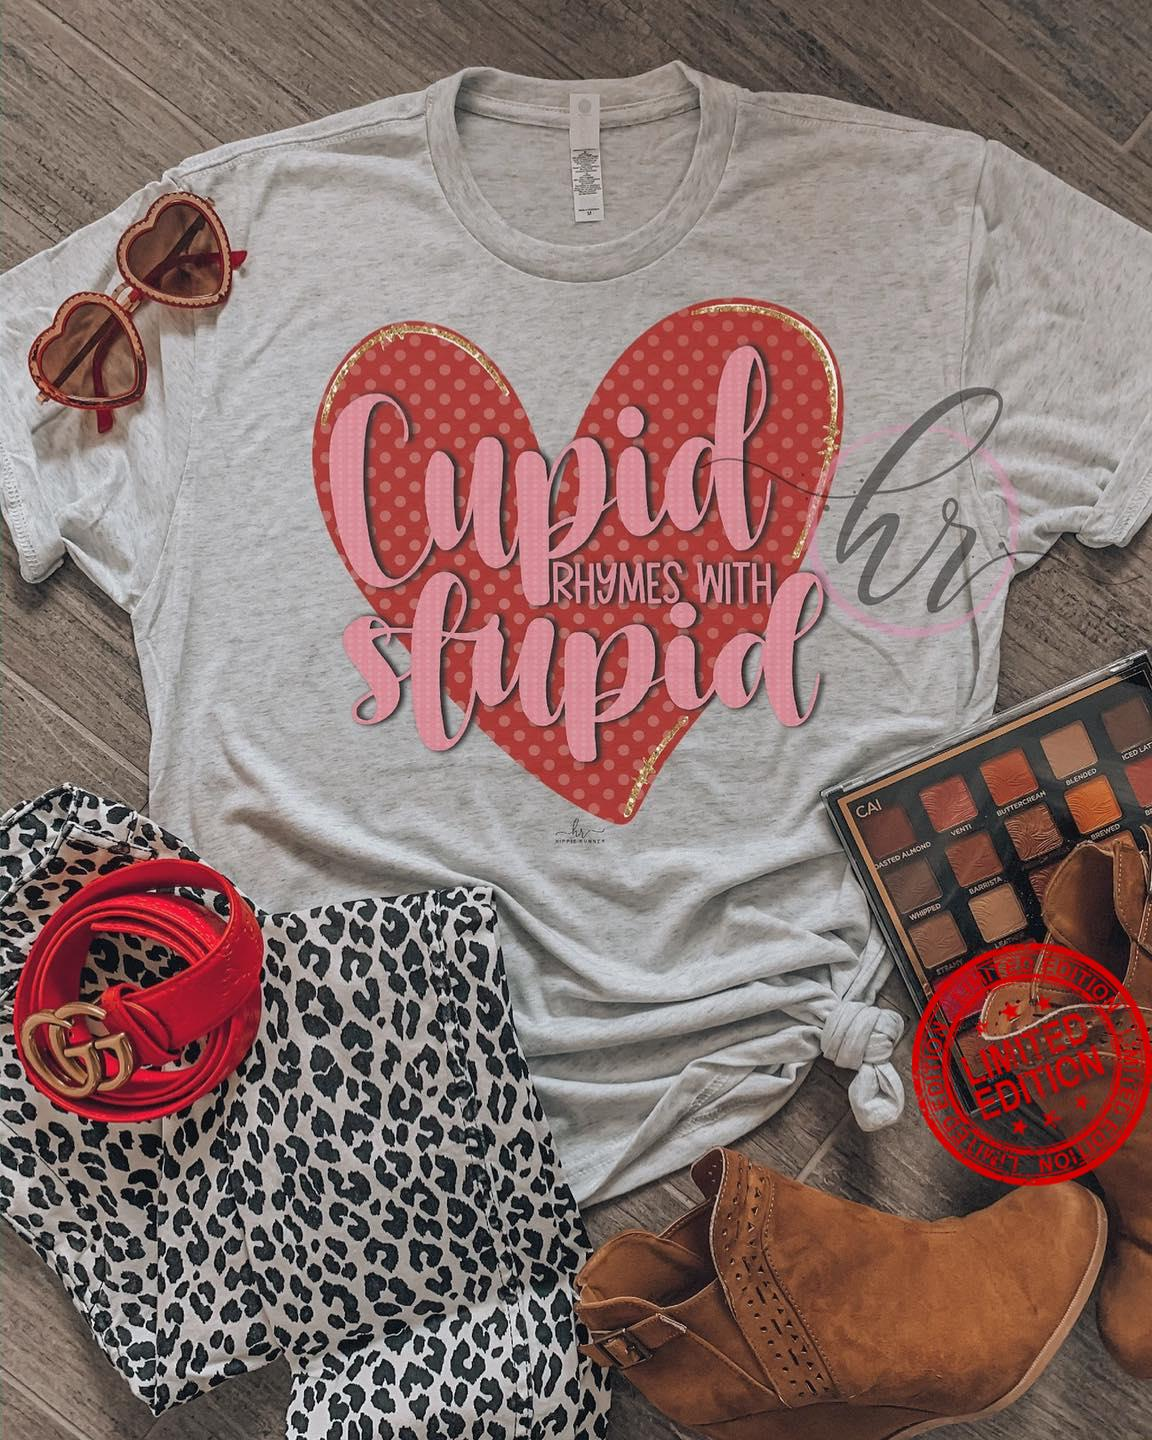 Cupid Rhymes With Stupid Shirt